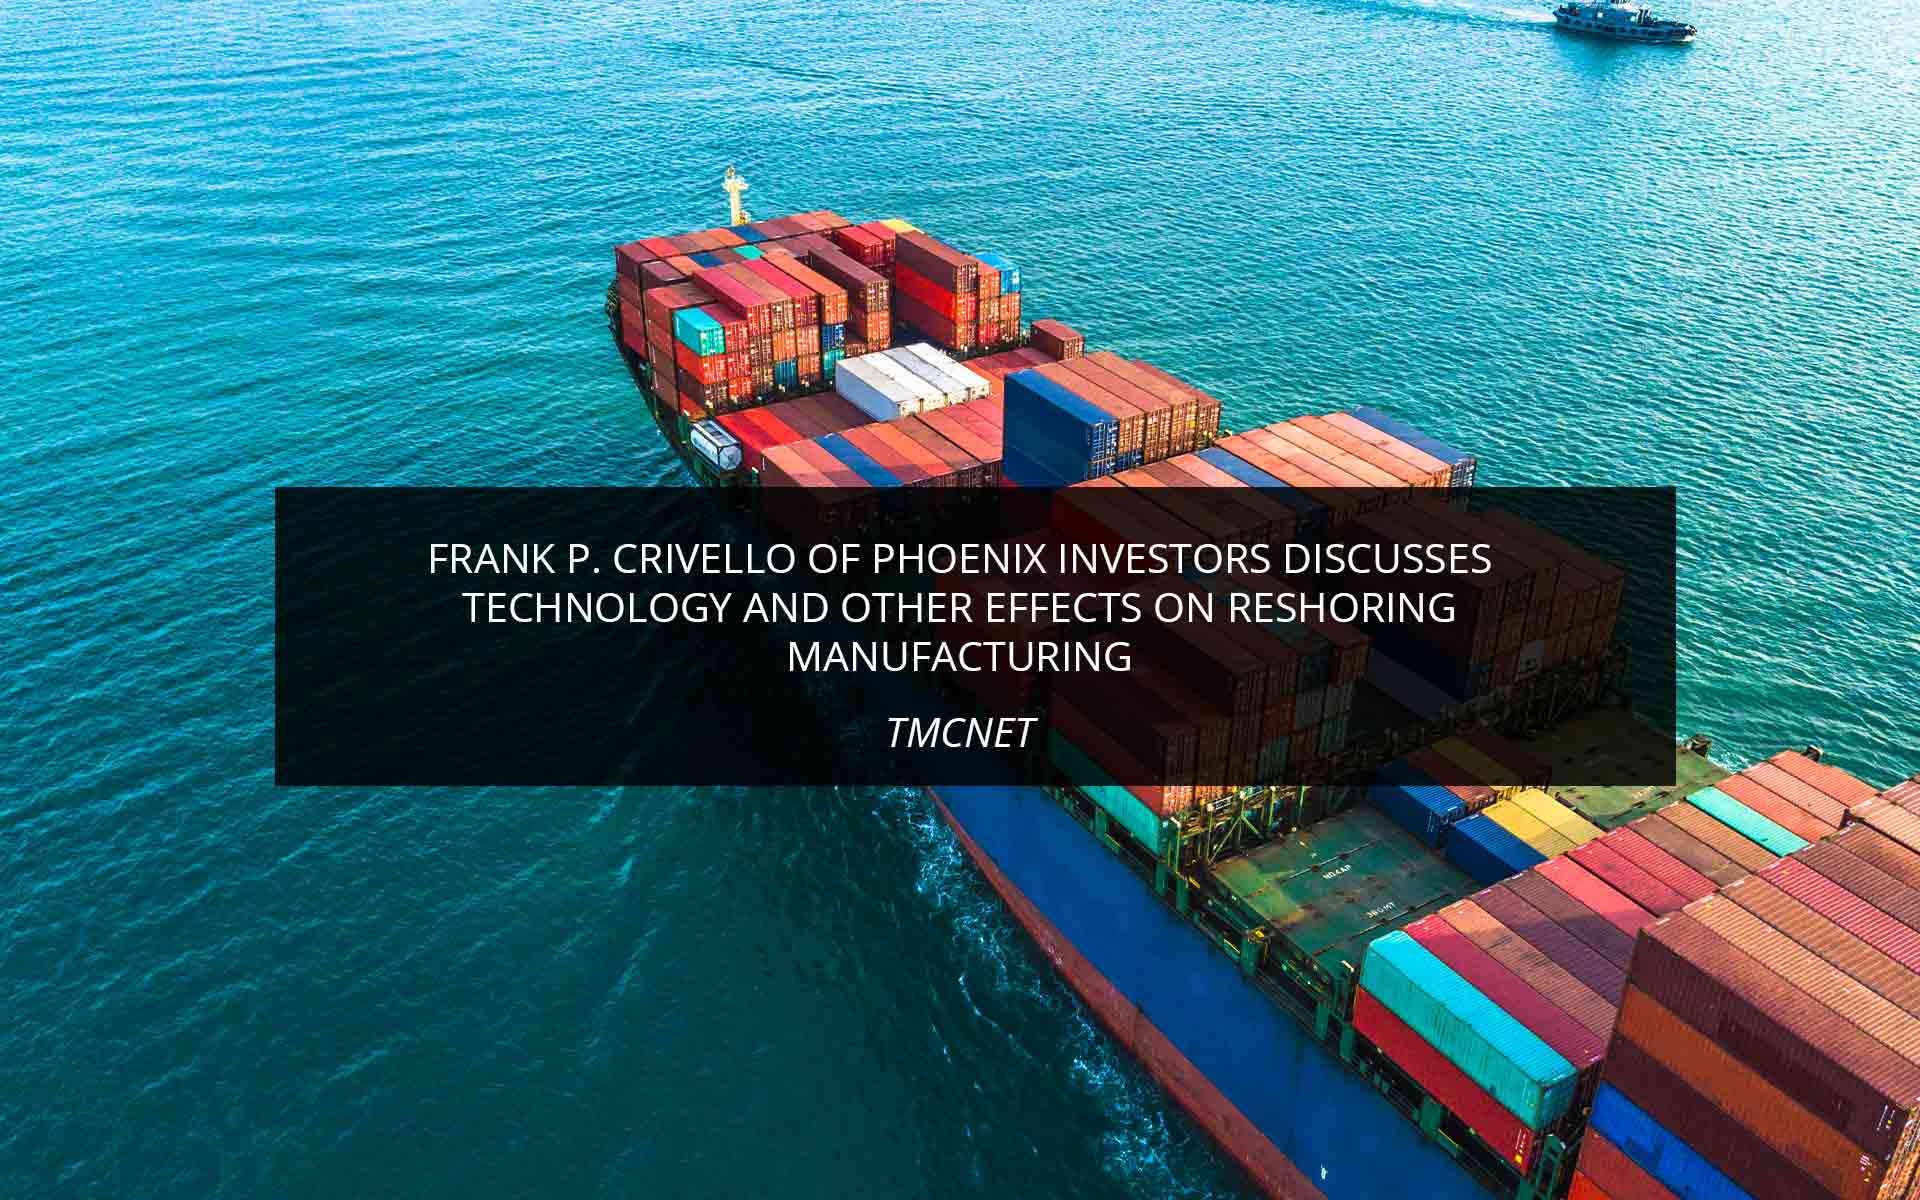 Frank P. Crivello of Phoenix Investors Discusses Technology and Other Effects on Reshoring Manufacturing